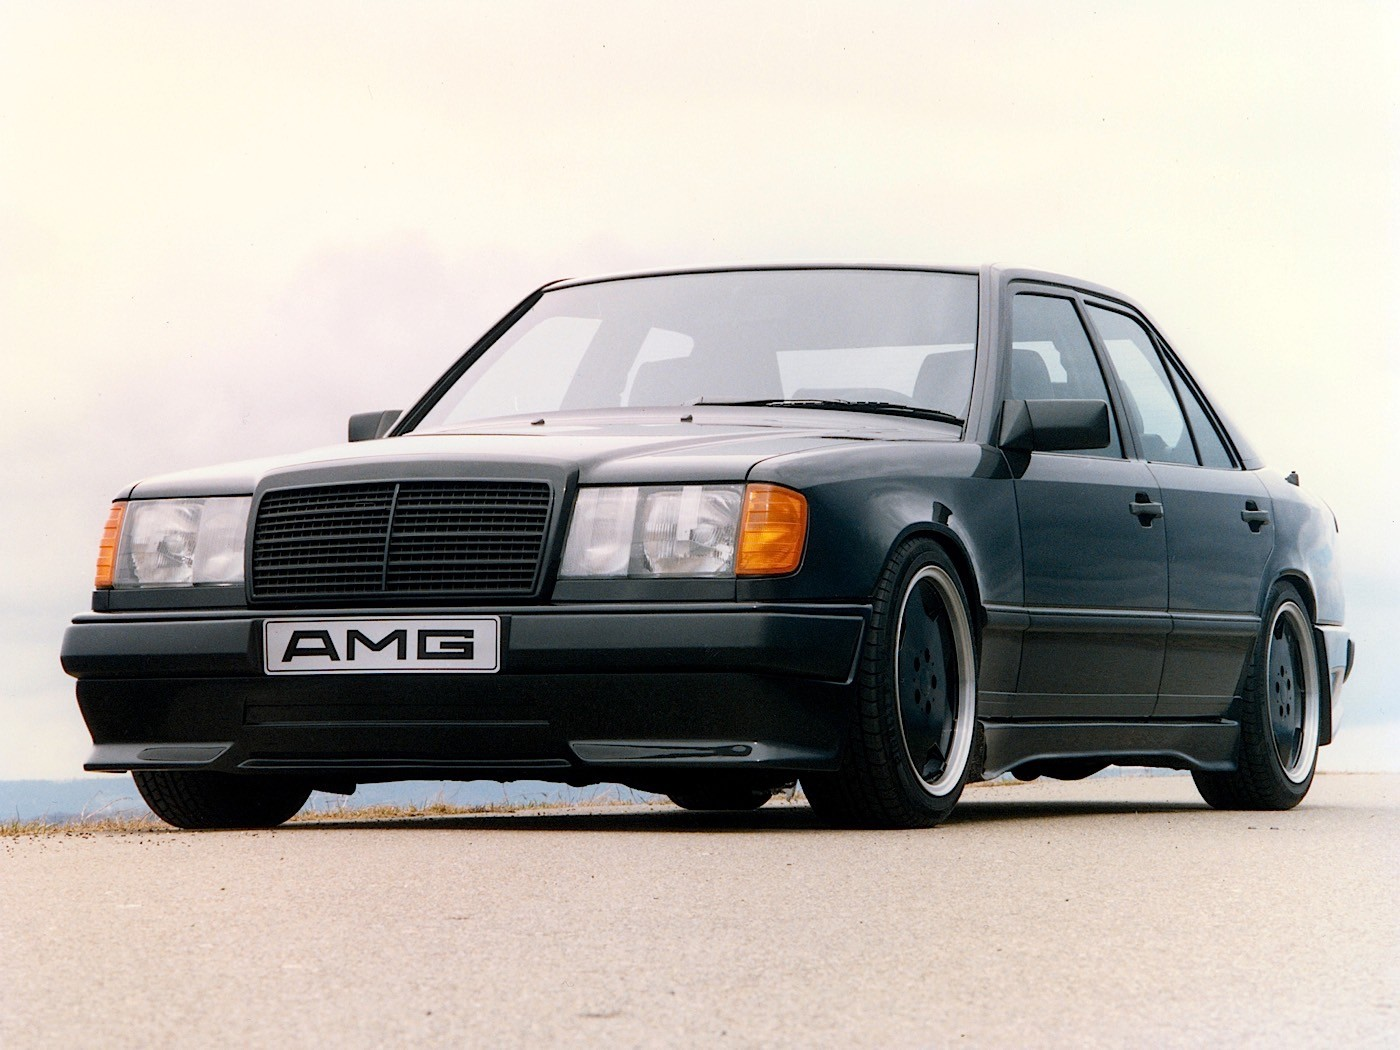 Coolest Obscure Mercedes-AMG Models in History - autoevolution